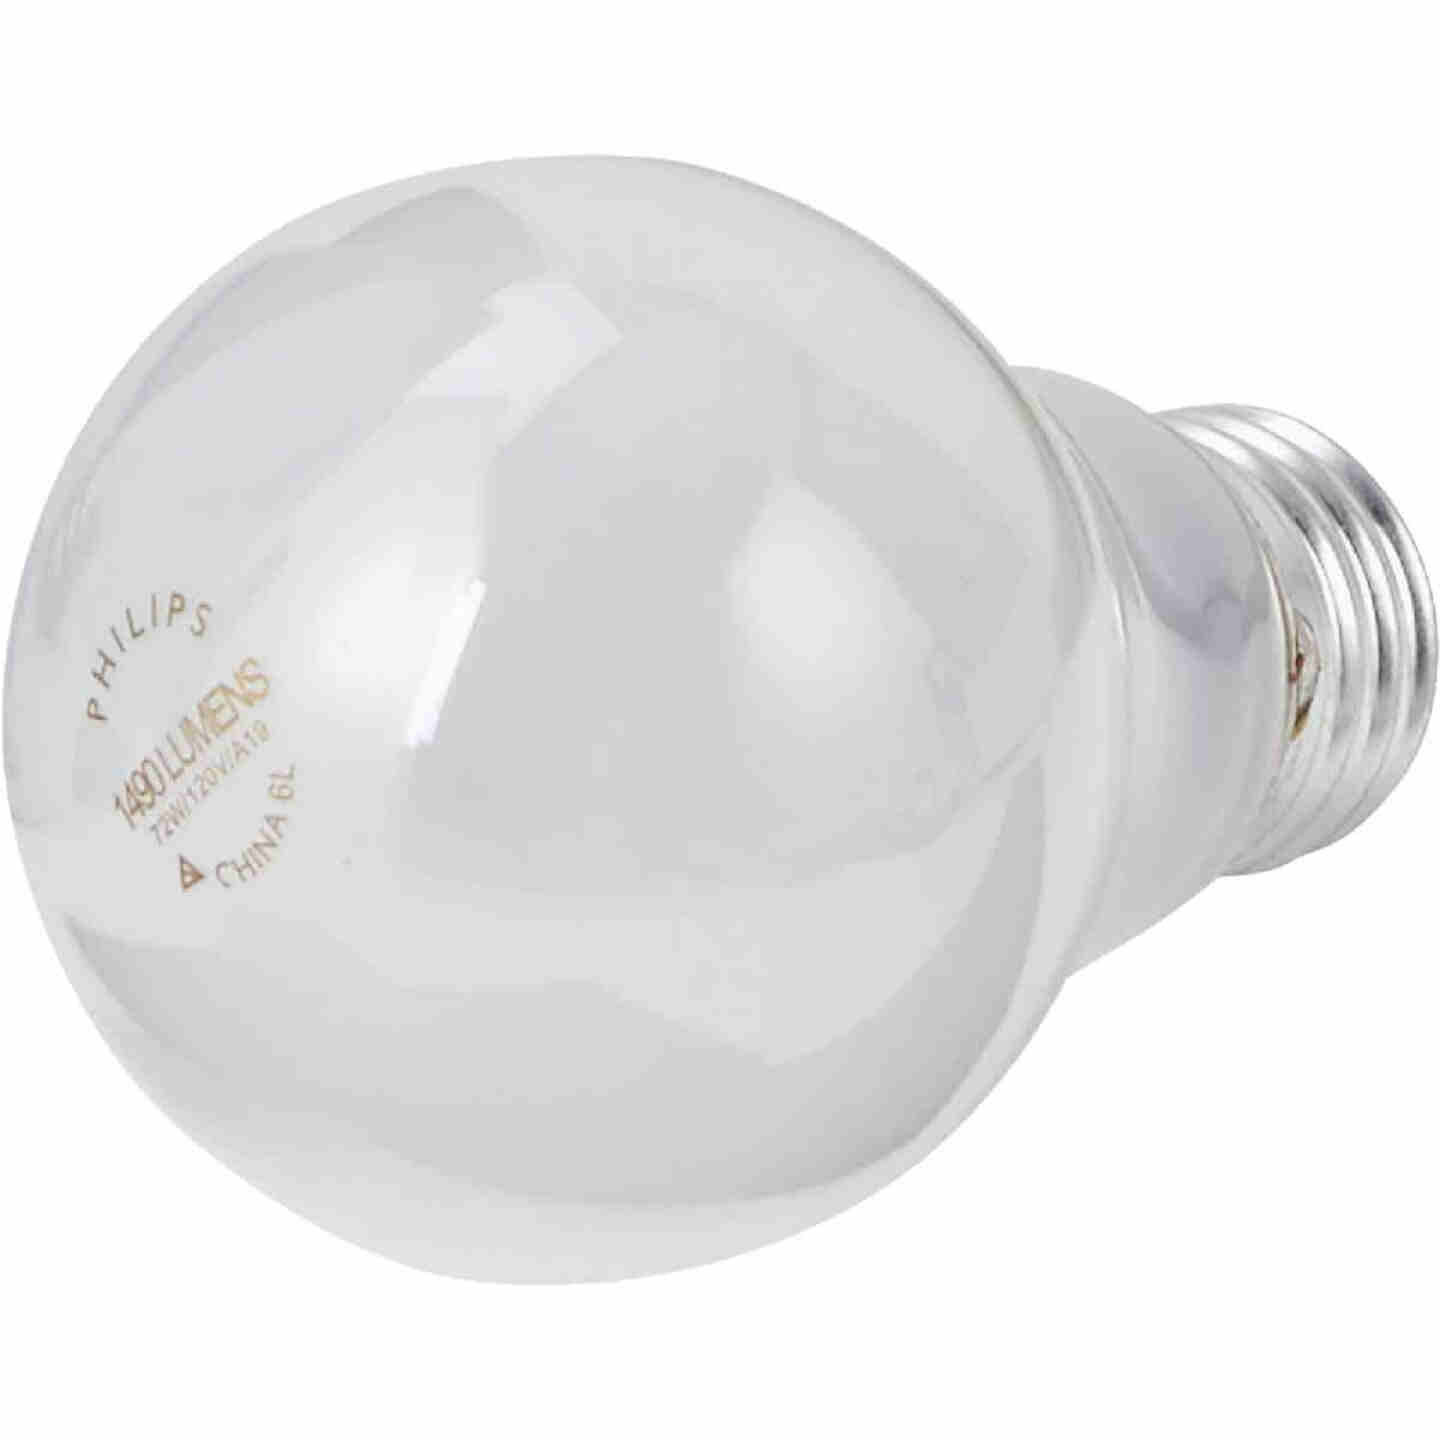 Philips EcoVantage 100W Equivalent Soft White Medium Base A19 Halogen Light Bulb (4-Pack) Image 3